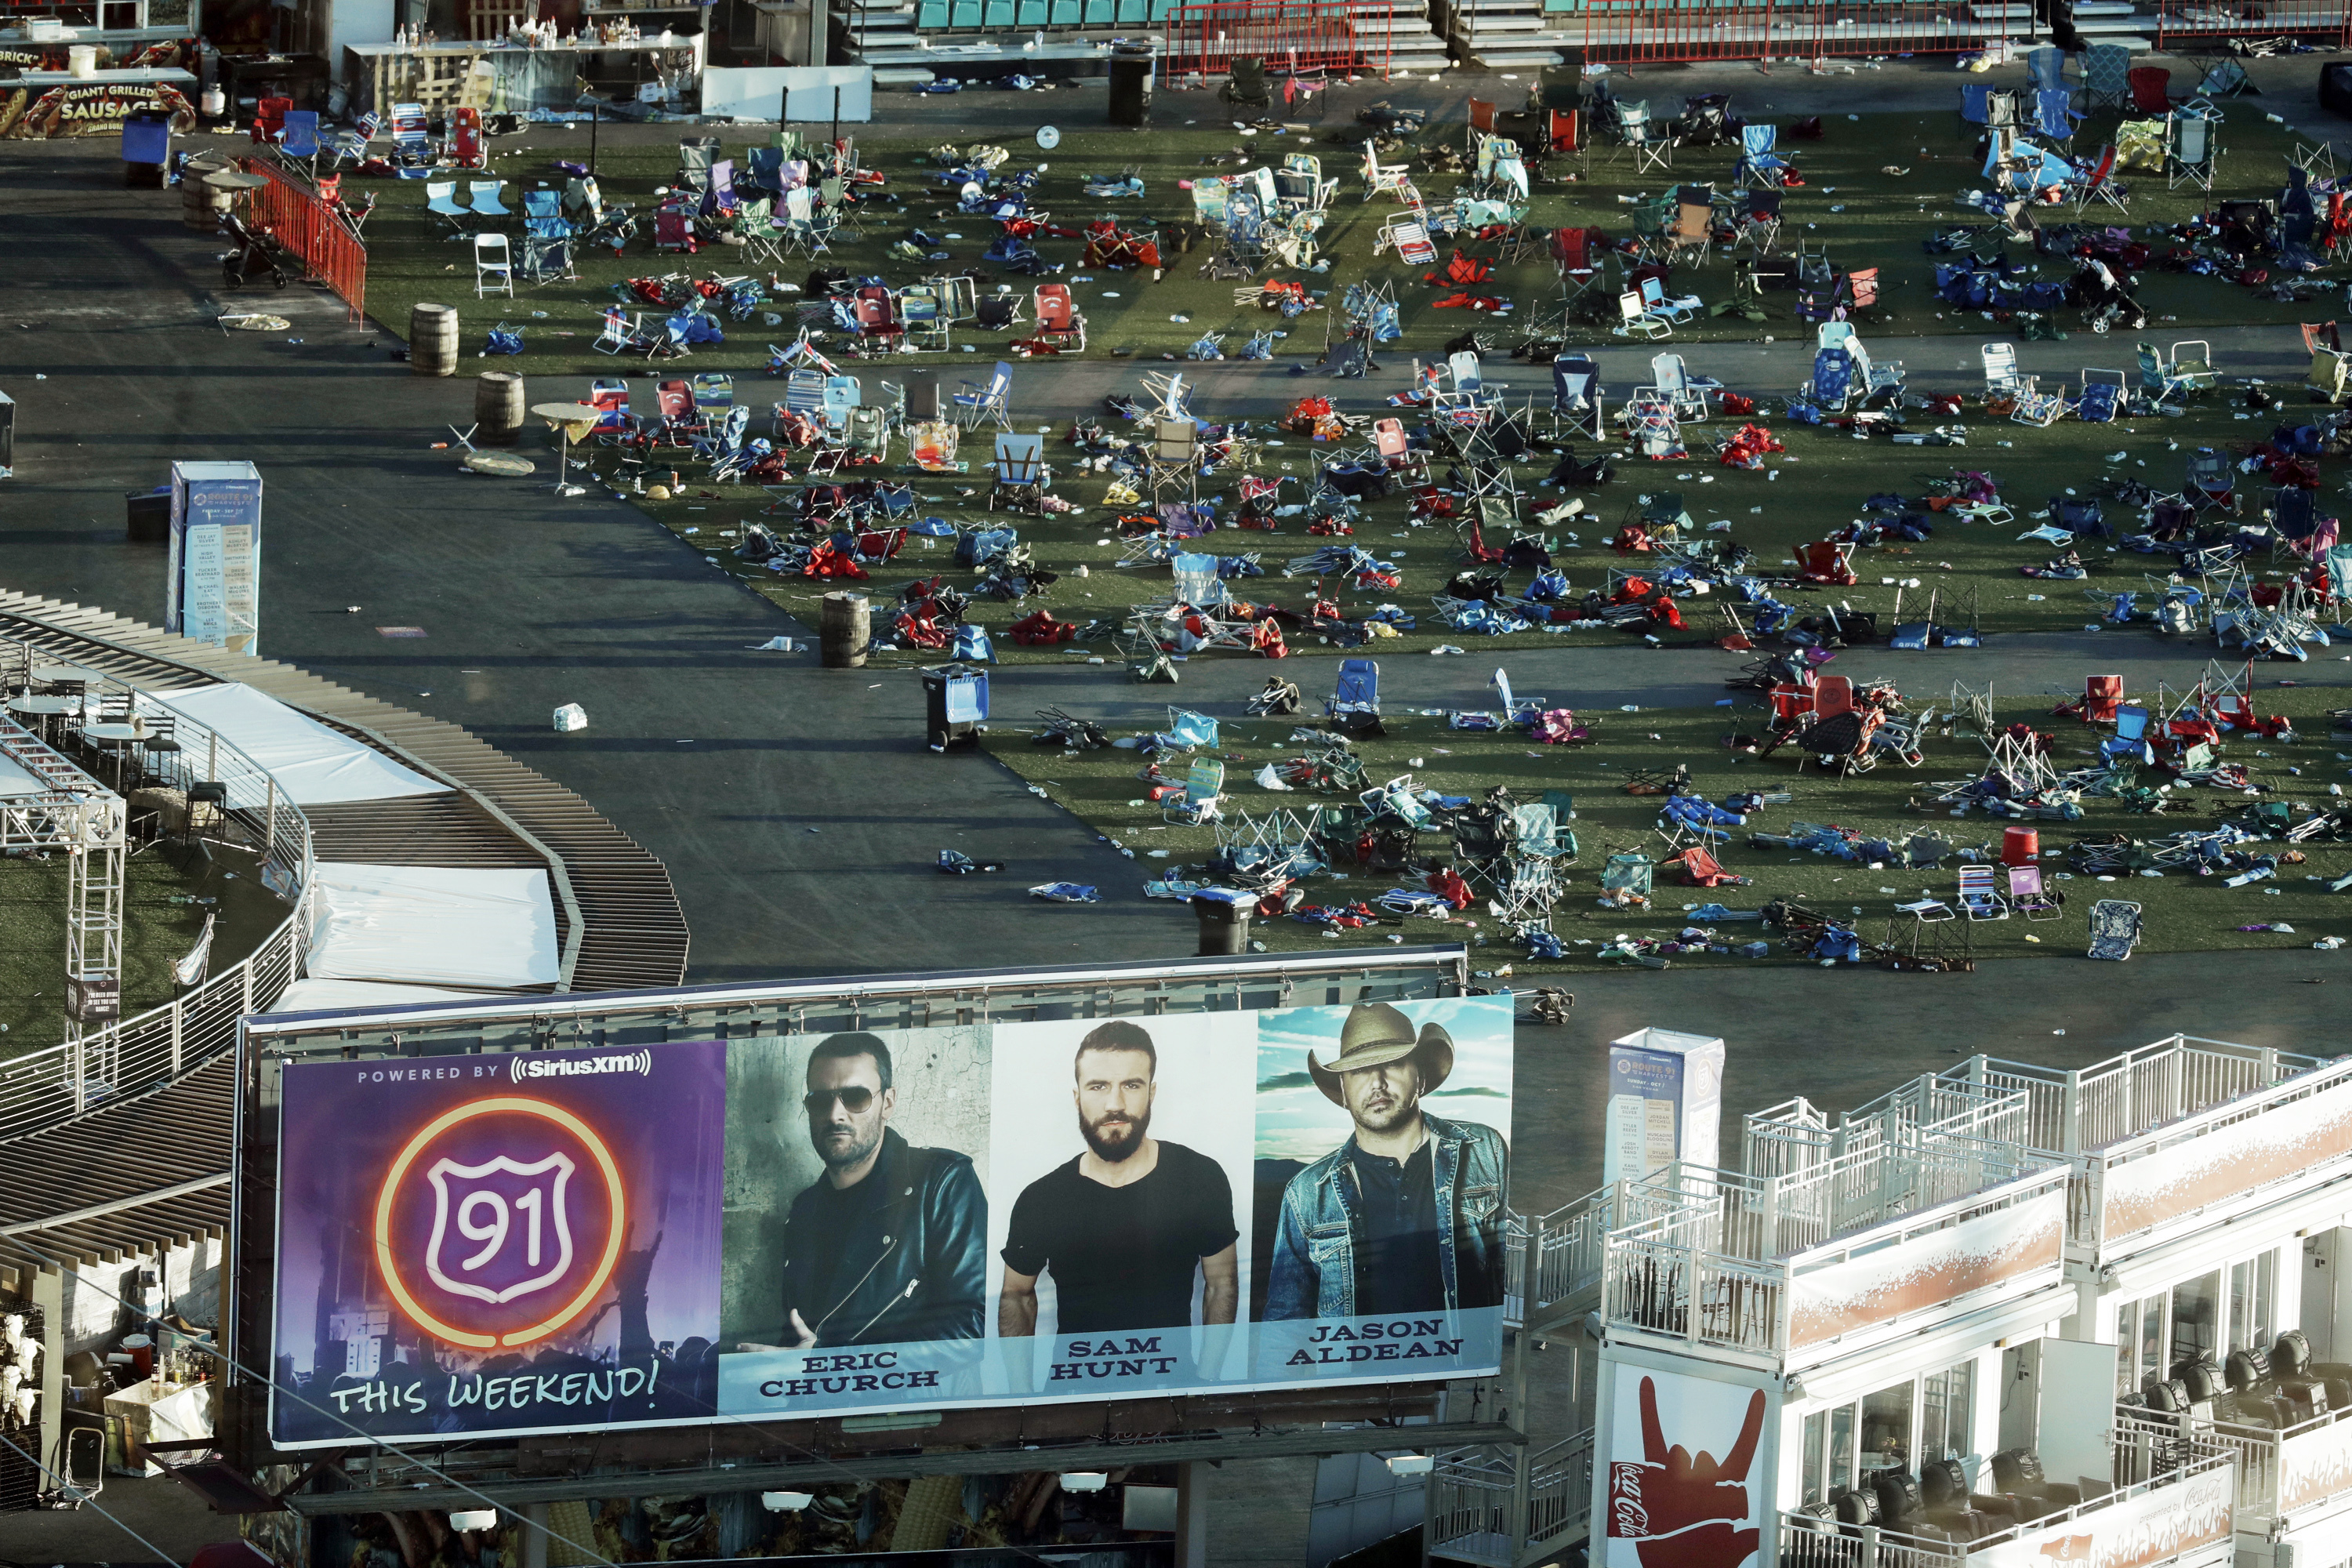 In this Oct. 3, 2017 file photo, personal belongings and debris litters the Route 91 Harvest festival grounds across the street from the Mandalay Bay resort and casino in Las Vegas.